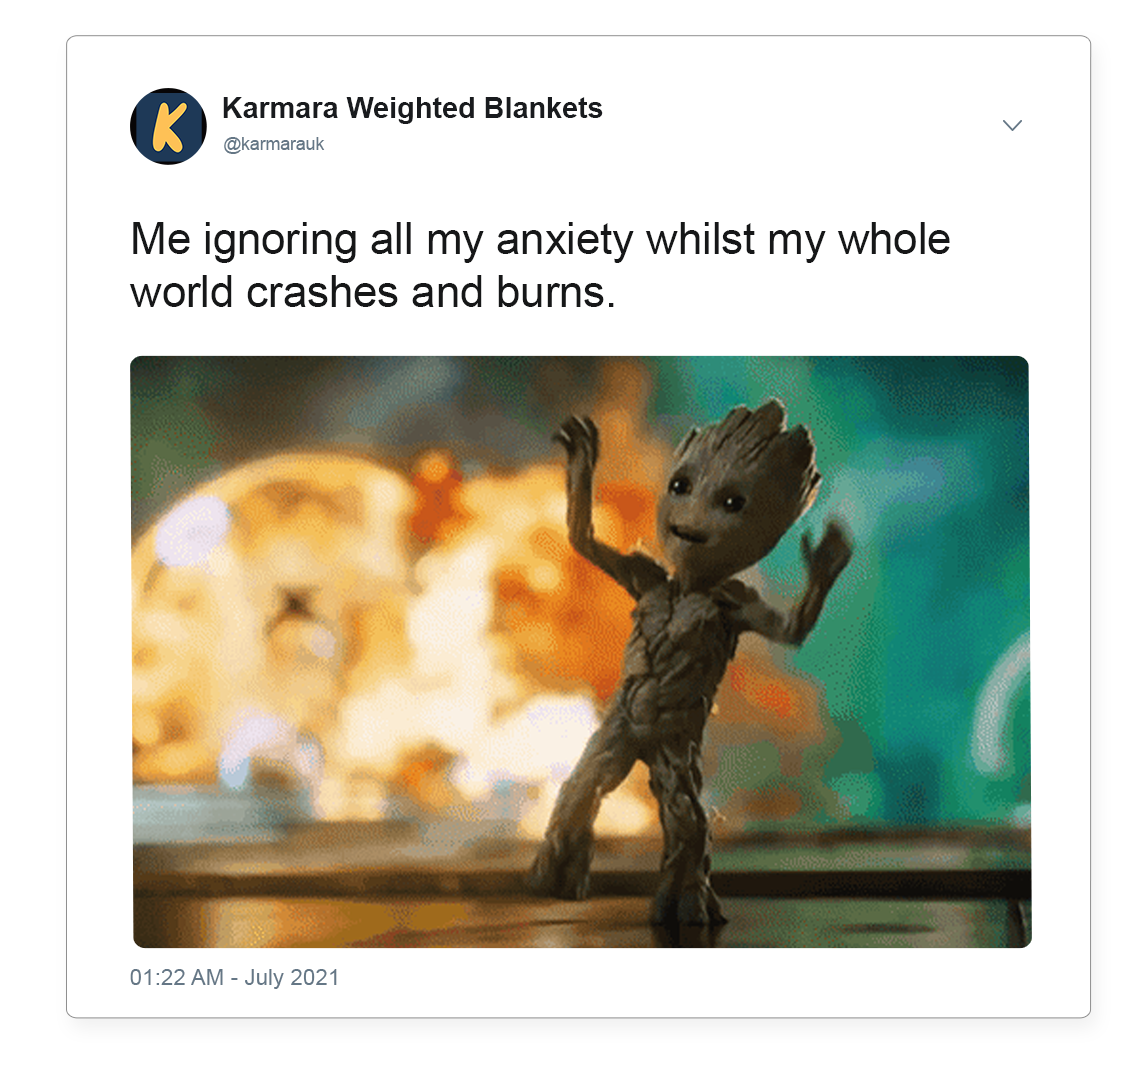 Don't ignore anxiety